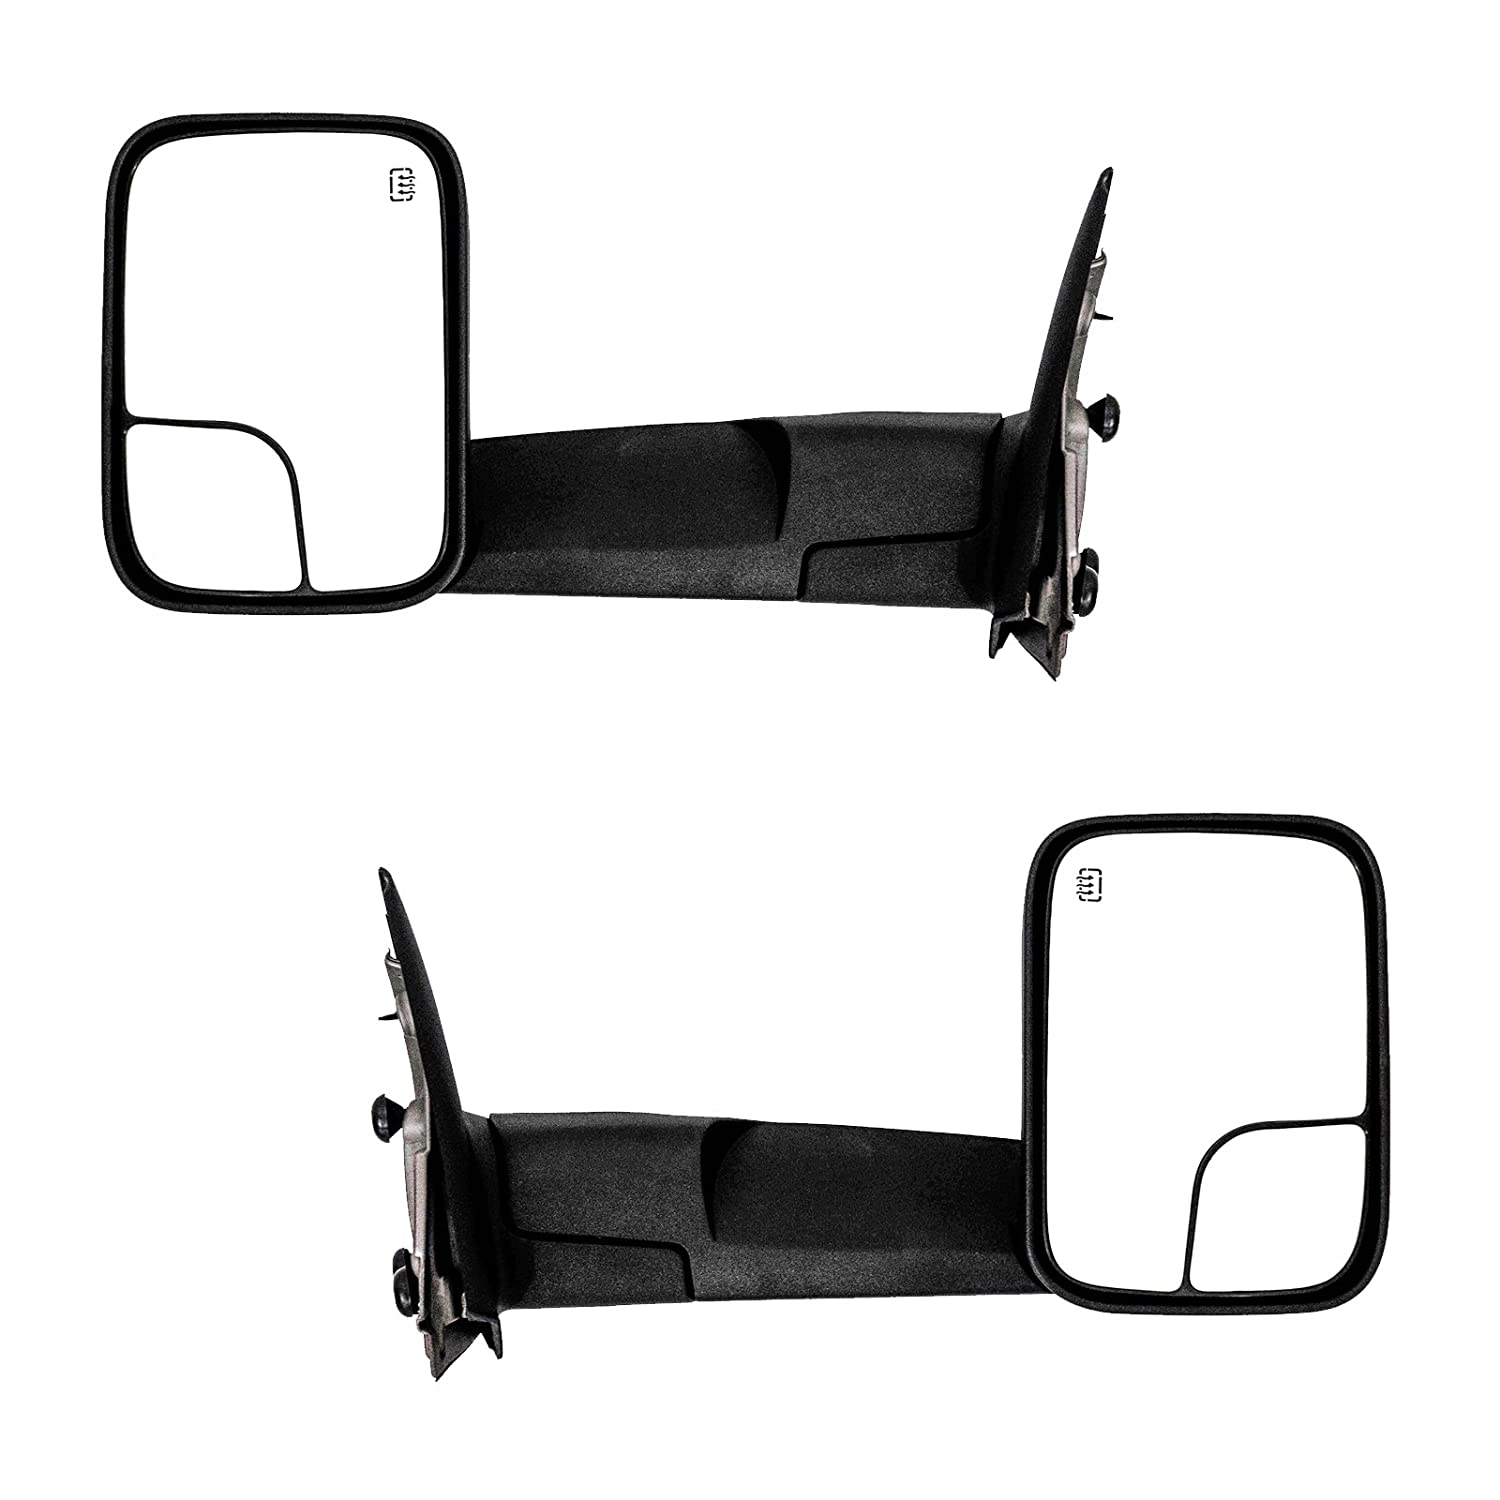 Powered Galaxy Auto Towing Mirrors for 2002-08 Dodge RAM 1500 /& 2003-09 Dodge RAM 2500//3500 Black Pair Set Heated